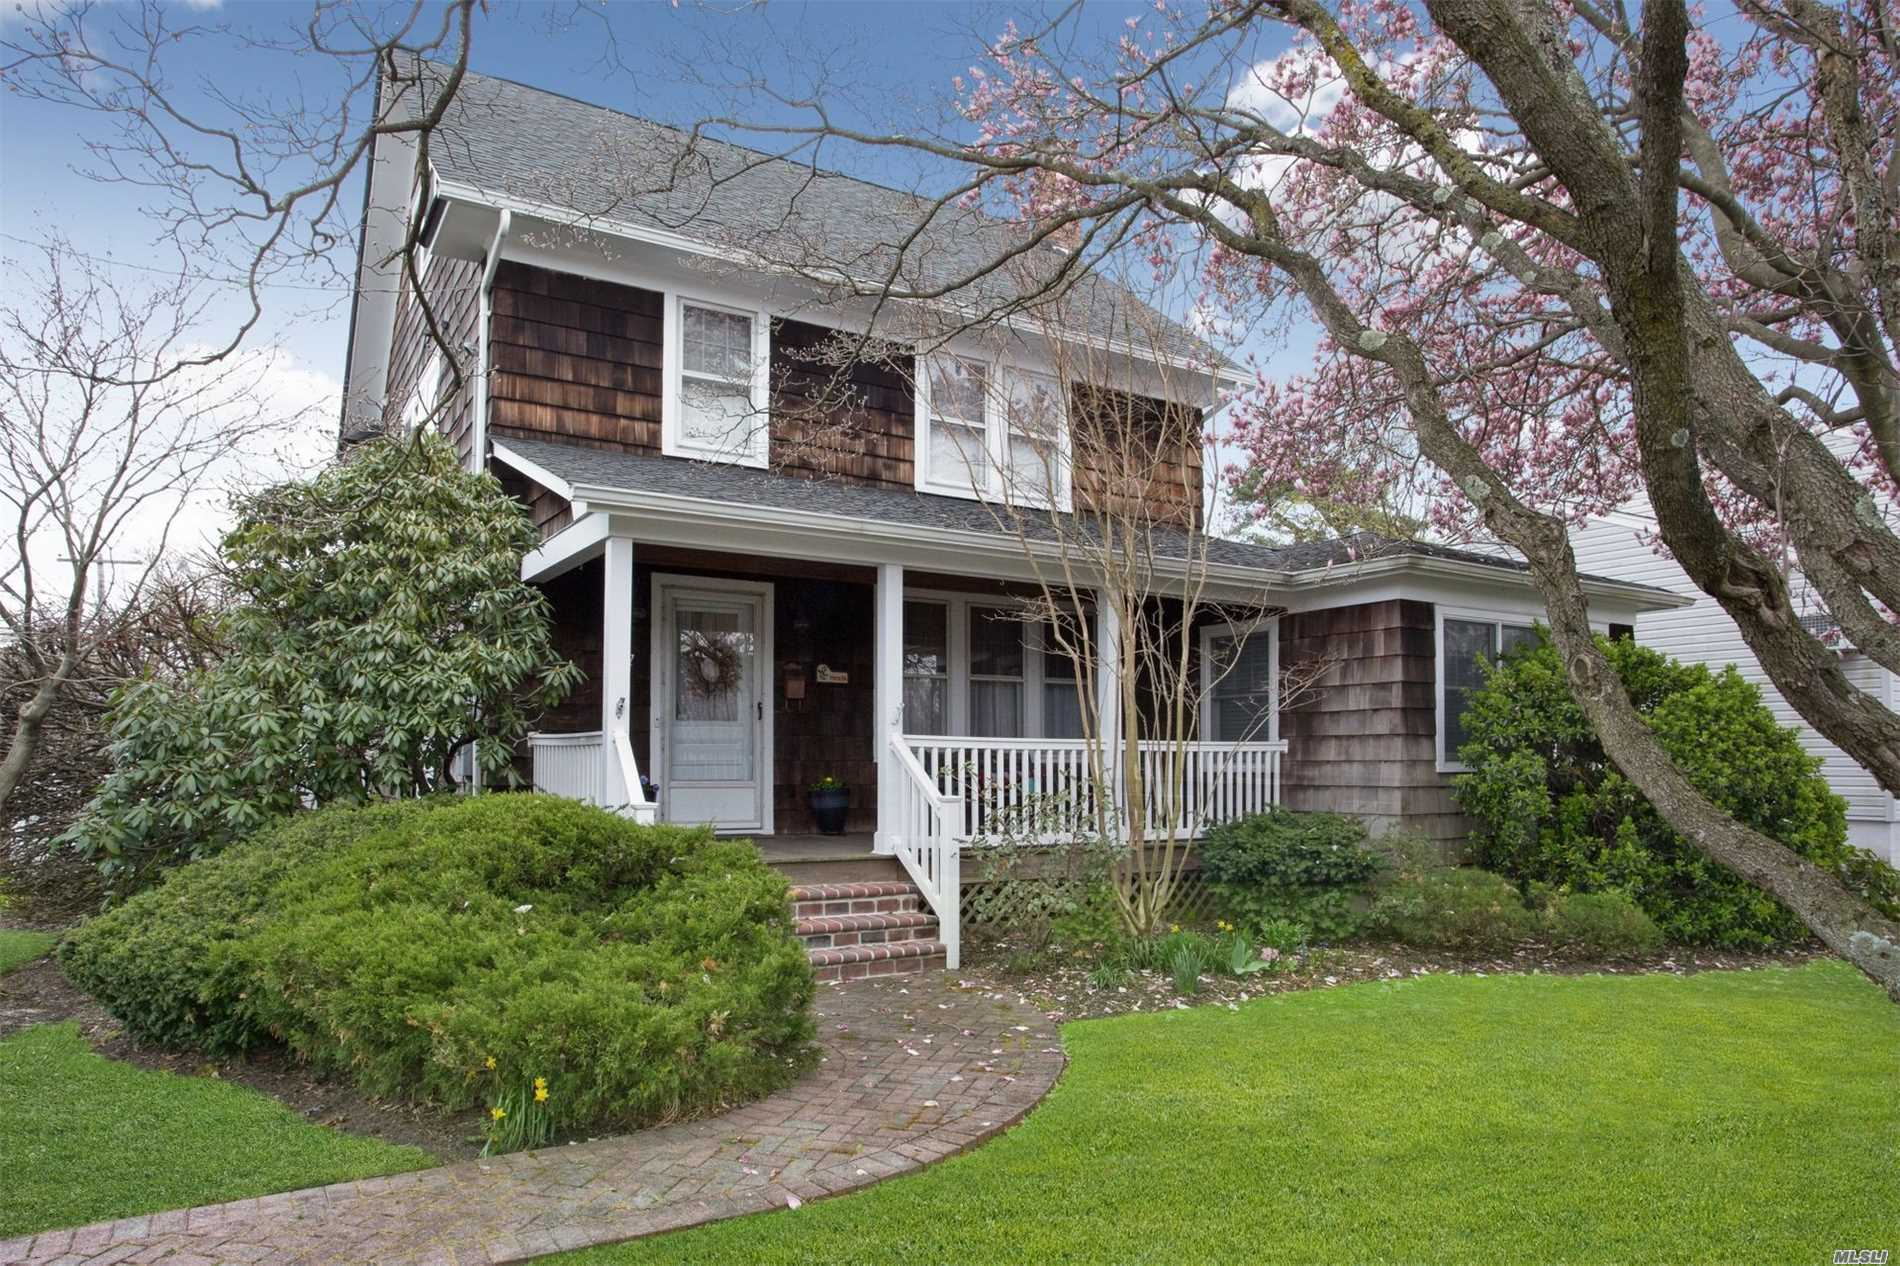 A beautifully maint 3br/2bth Colonial w/2 car gar, fully fenced yd w/mature landscaping, IGS, close to all. Spec features inc wood flrs thru out, Lrg Fml LR w/wood burning Fireplace, Den w/2 skylights, & a cozy window seat. Updated Kit & eating area w/Tin tiled ceiling & bksplash, Silestone Island & Countertops, Birch & Glass Cab leading to a DR w/sliders to an updated Wood Deck overlooking a small Koi pond. Updates inc New Roof, HW Htr & Oil Tank, 200amp elec, Alarm sys, & AC. Move in ready.